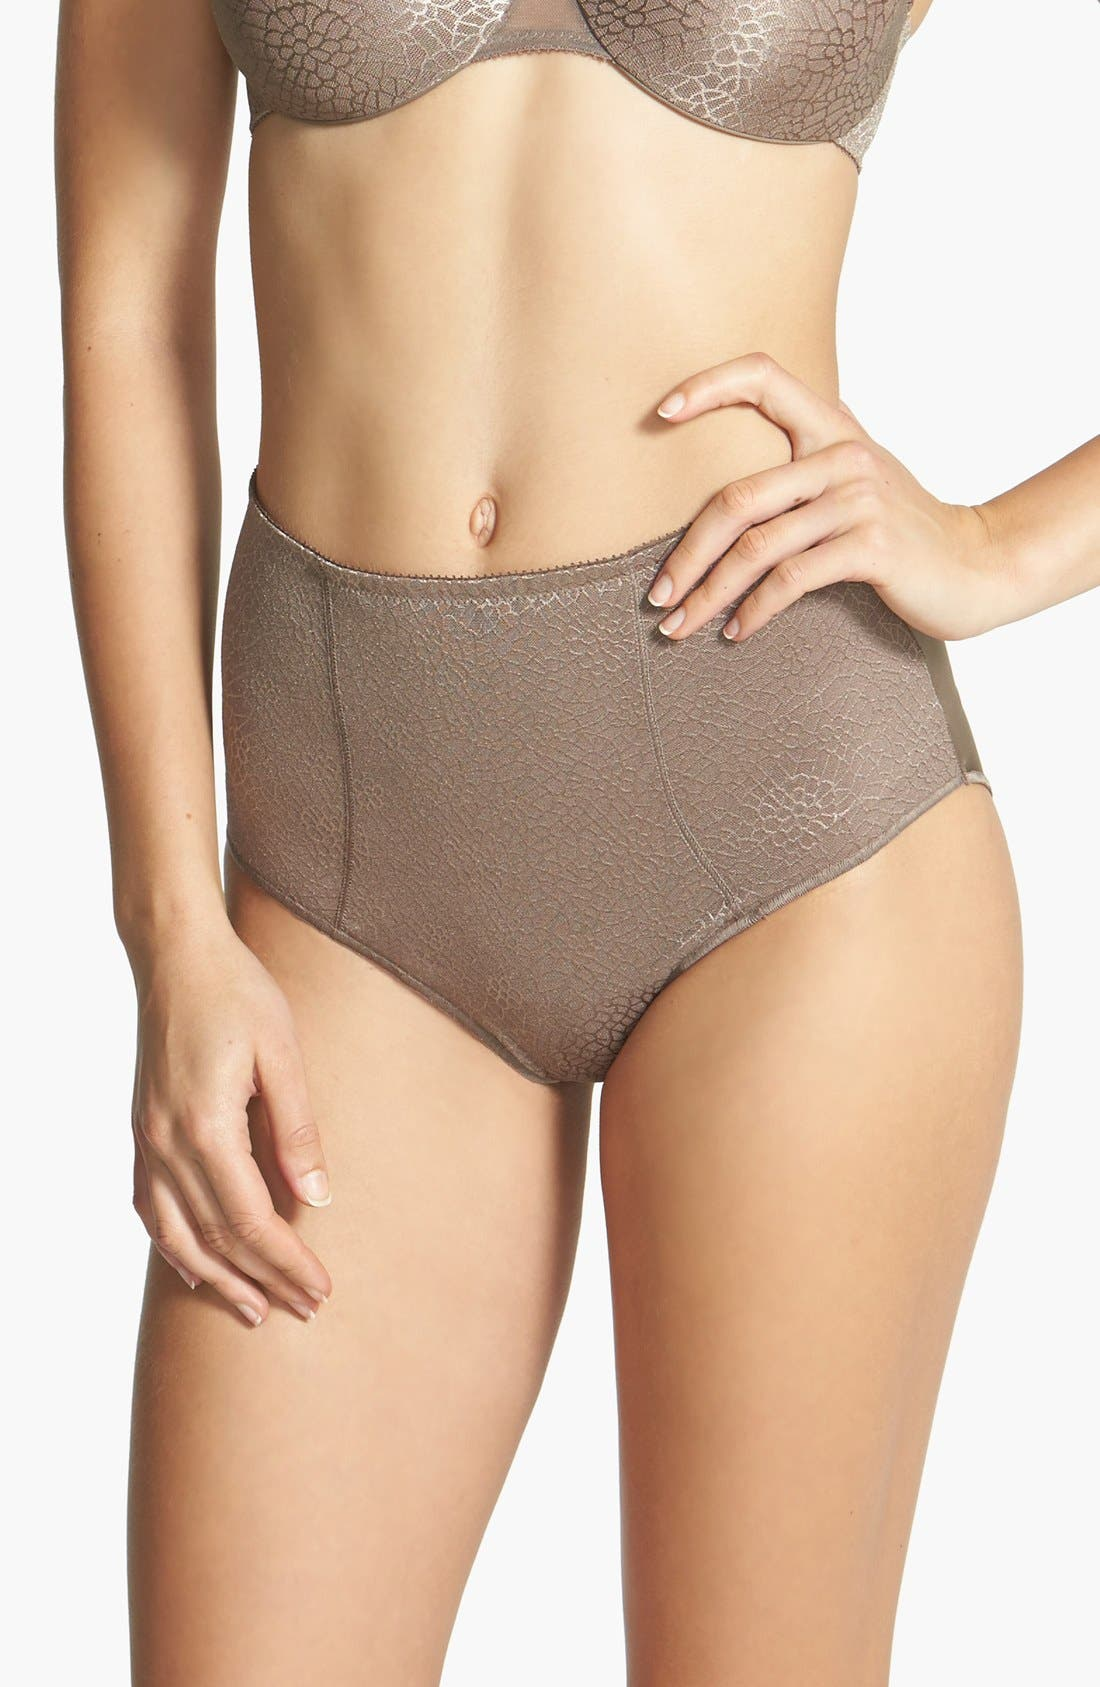 Alternate Image 1 Selected - Chantelle Intimates 'C Magnifique' Hipster Briefs